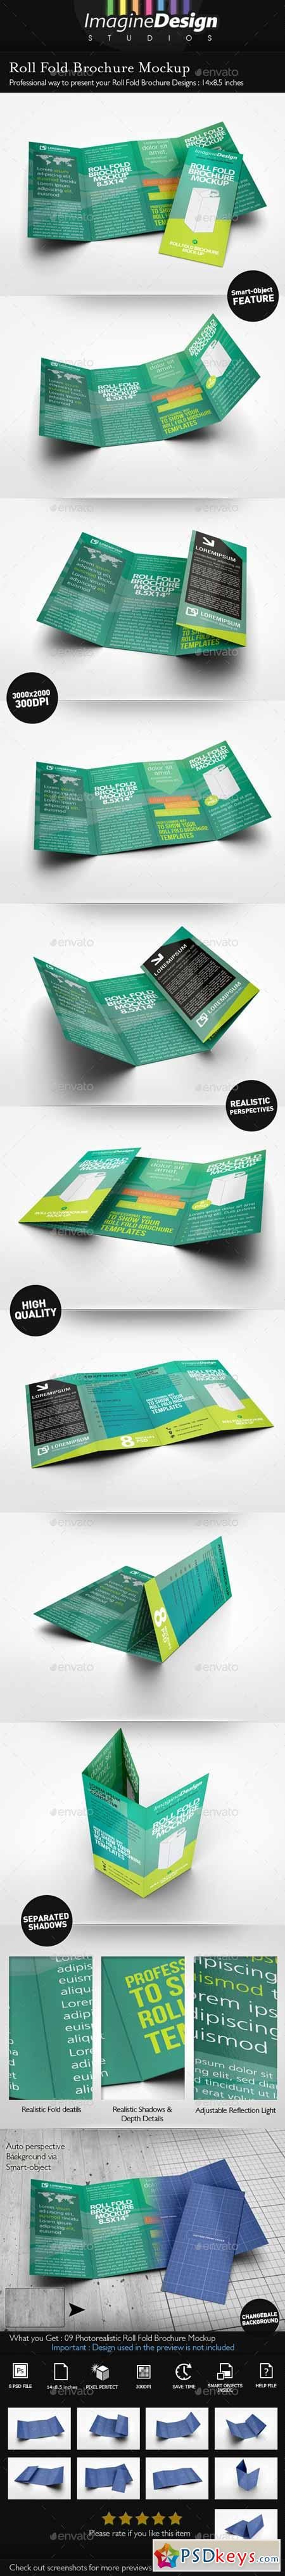 roll fold brochure template - roll fold brochure mockup 10020772 free download